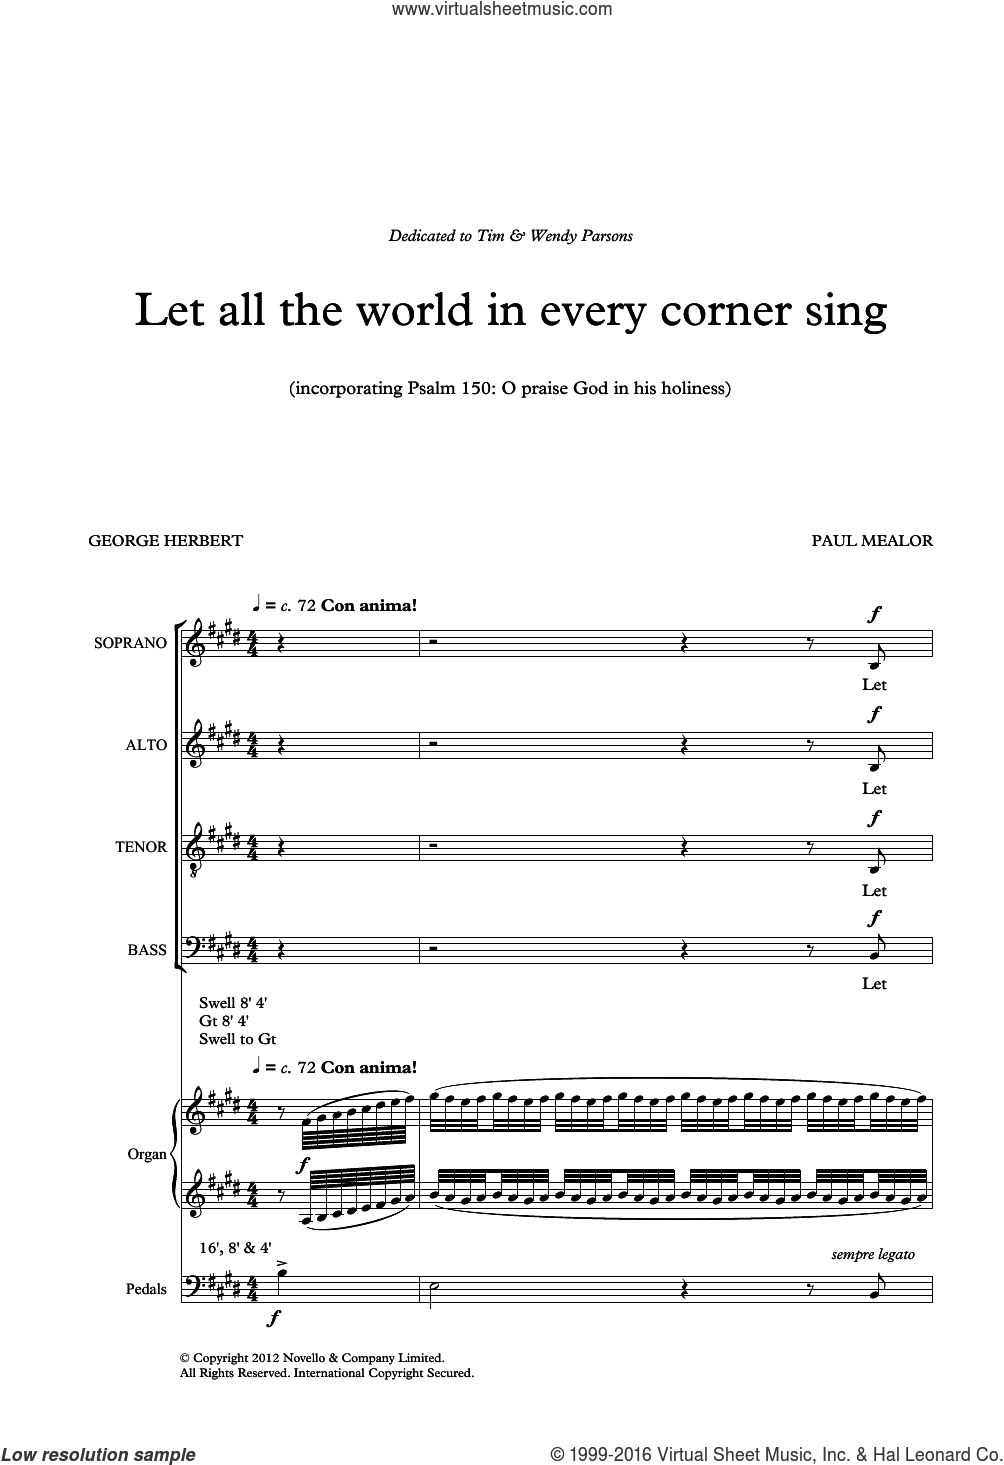 Let All The World In Every Corner Sing sheet music for voice, piano or guitar by George Herbert and Paul Mealor. Score Image Preview.